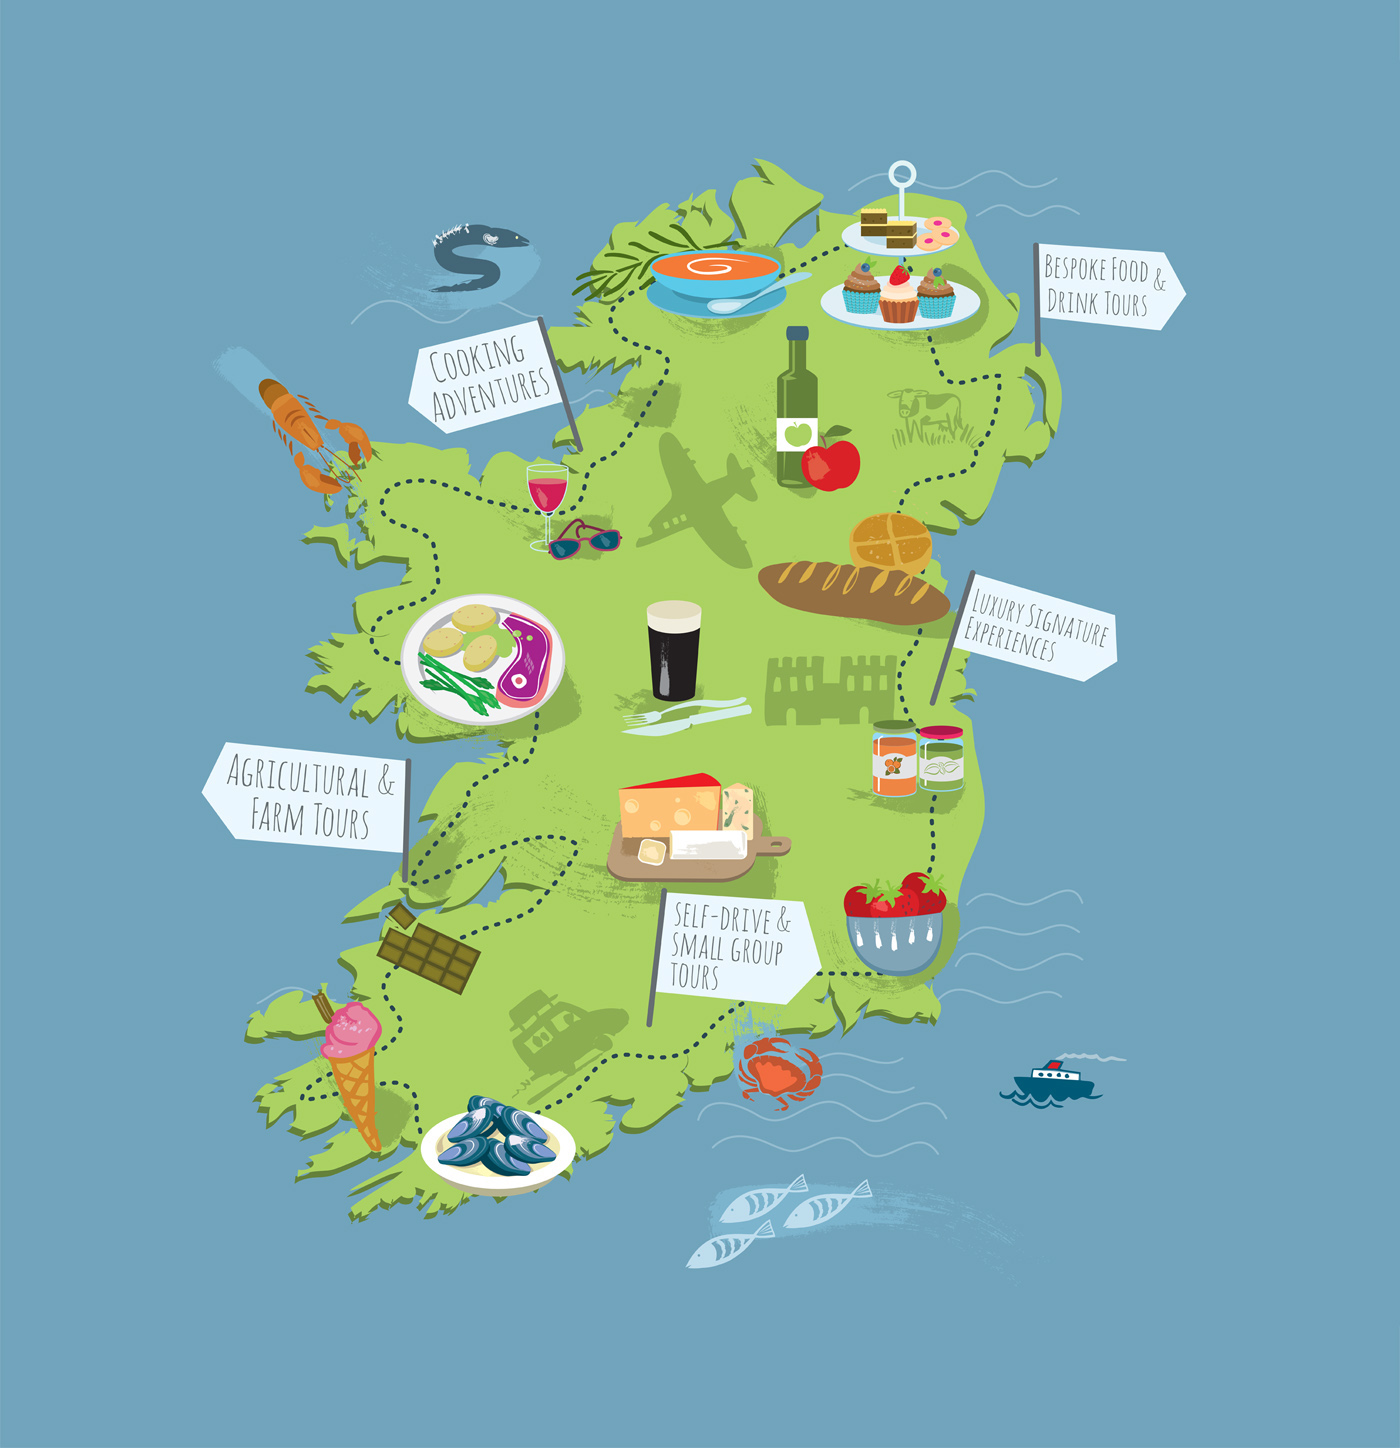 mentor talent s relocating guide to ireland cork limerick and galway